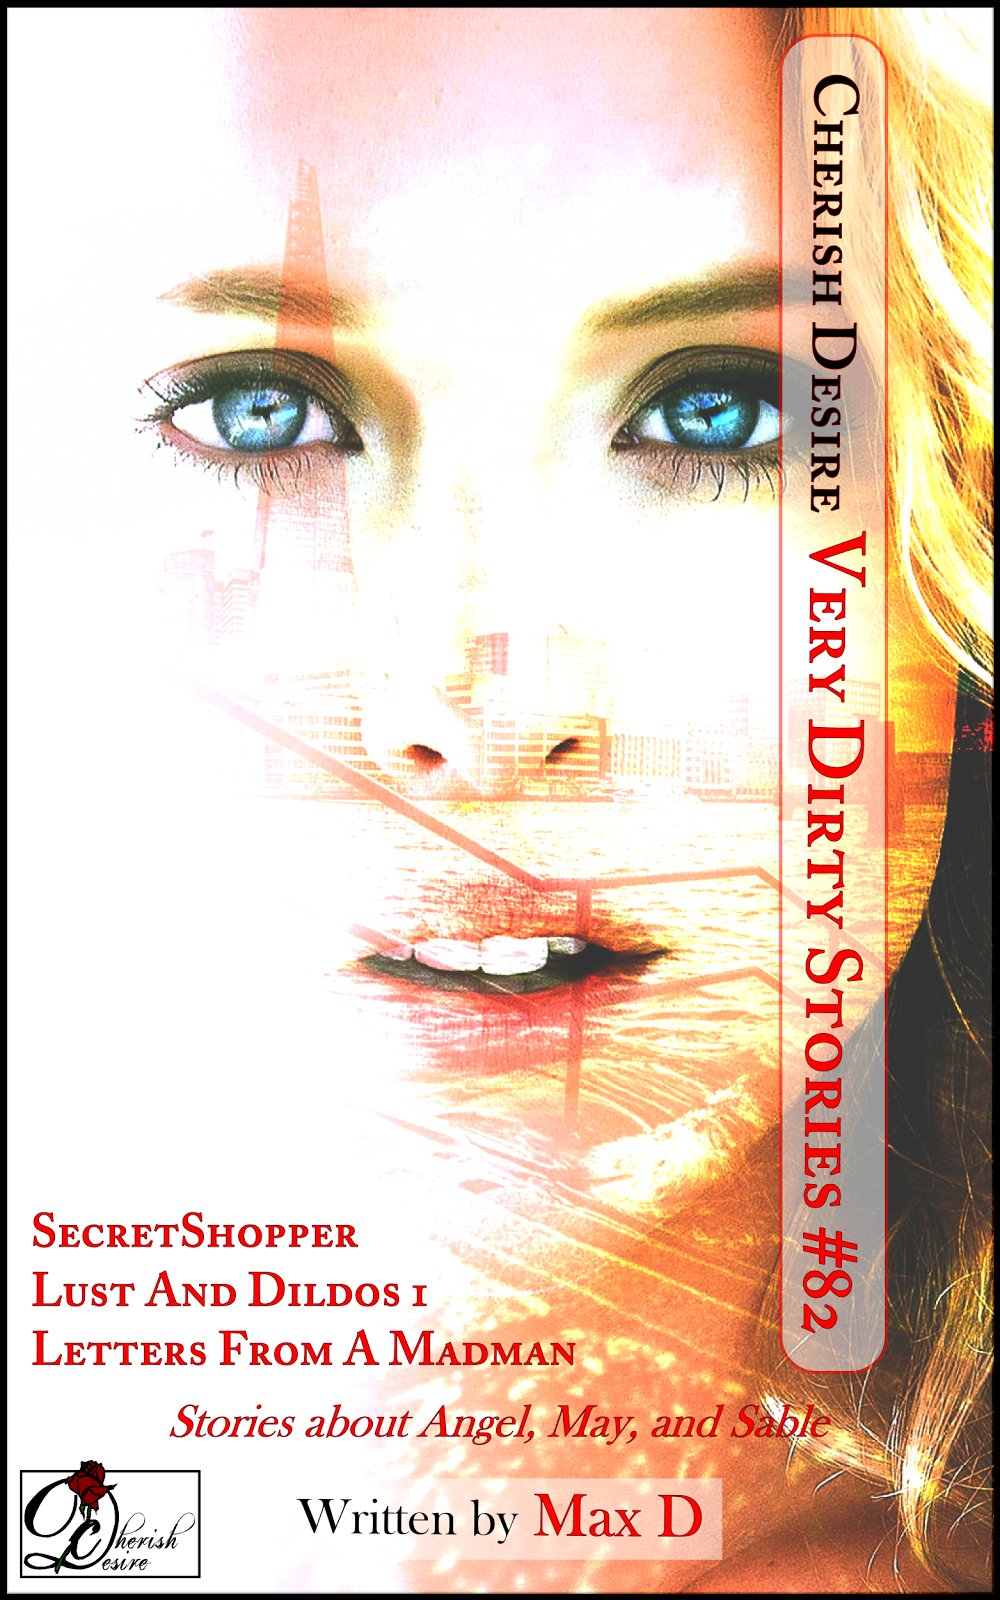 Cherish Desire: Very Dirty Stories #82, Max D, erotica